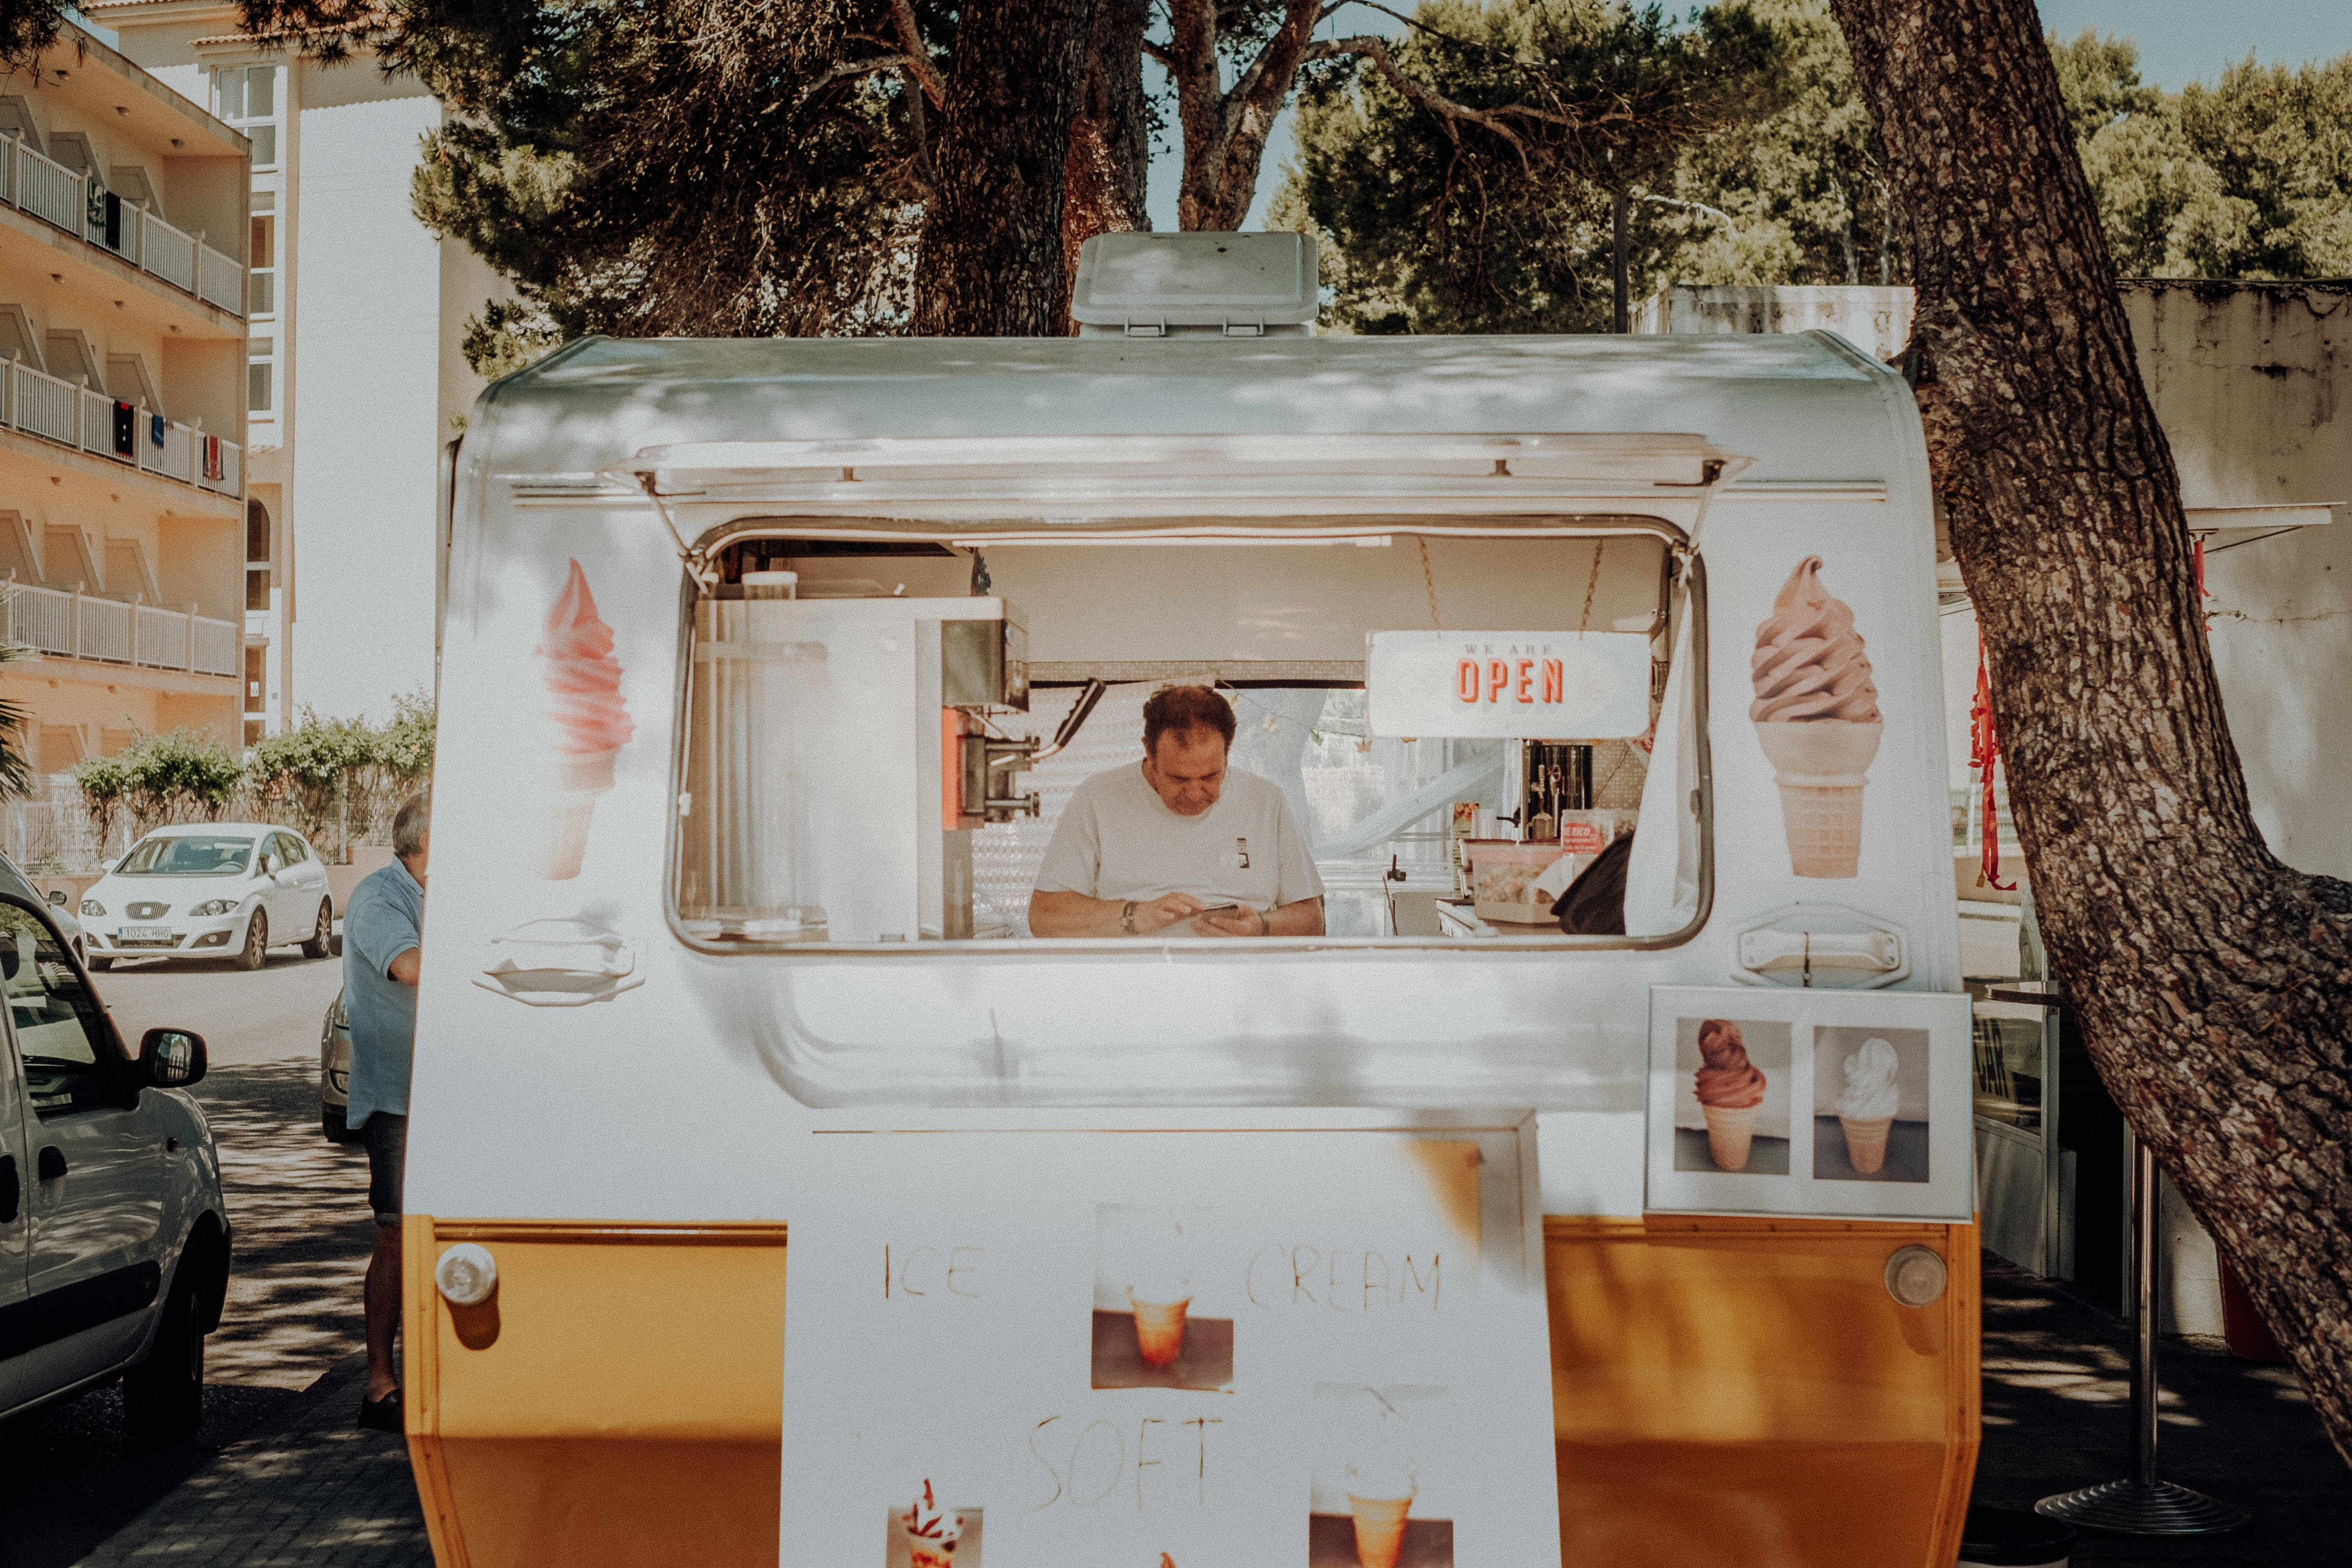 man inside ice cream truck